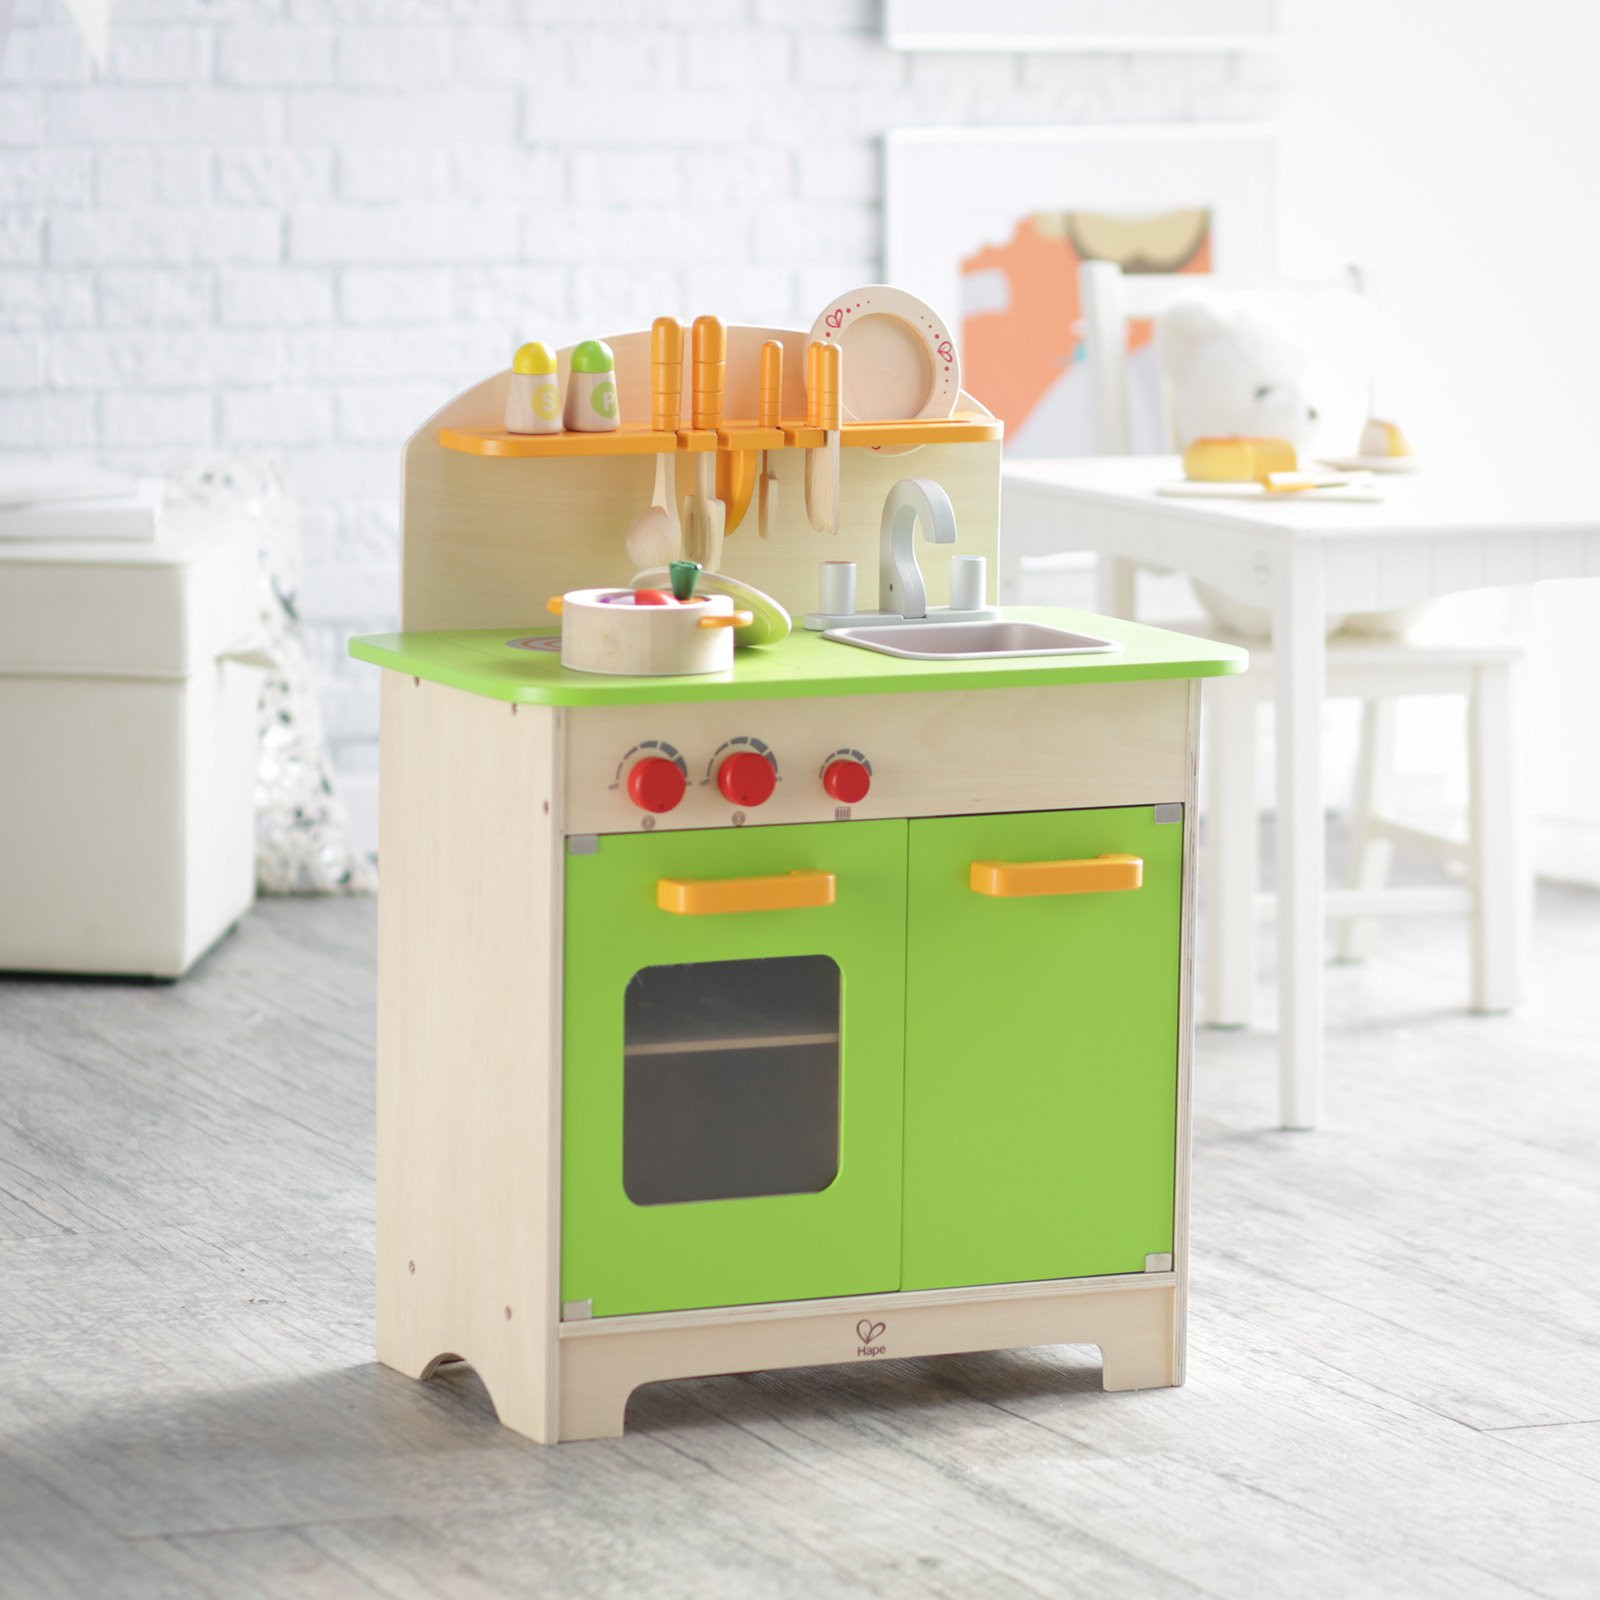 Best ideas about Chef Kitchen Decor Accessories . Save or Pin Hape Gourmet Chef Kitchen with Accessories Play Kitchens Now.